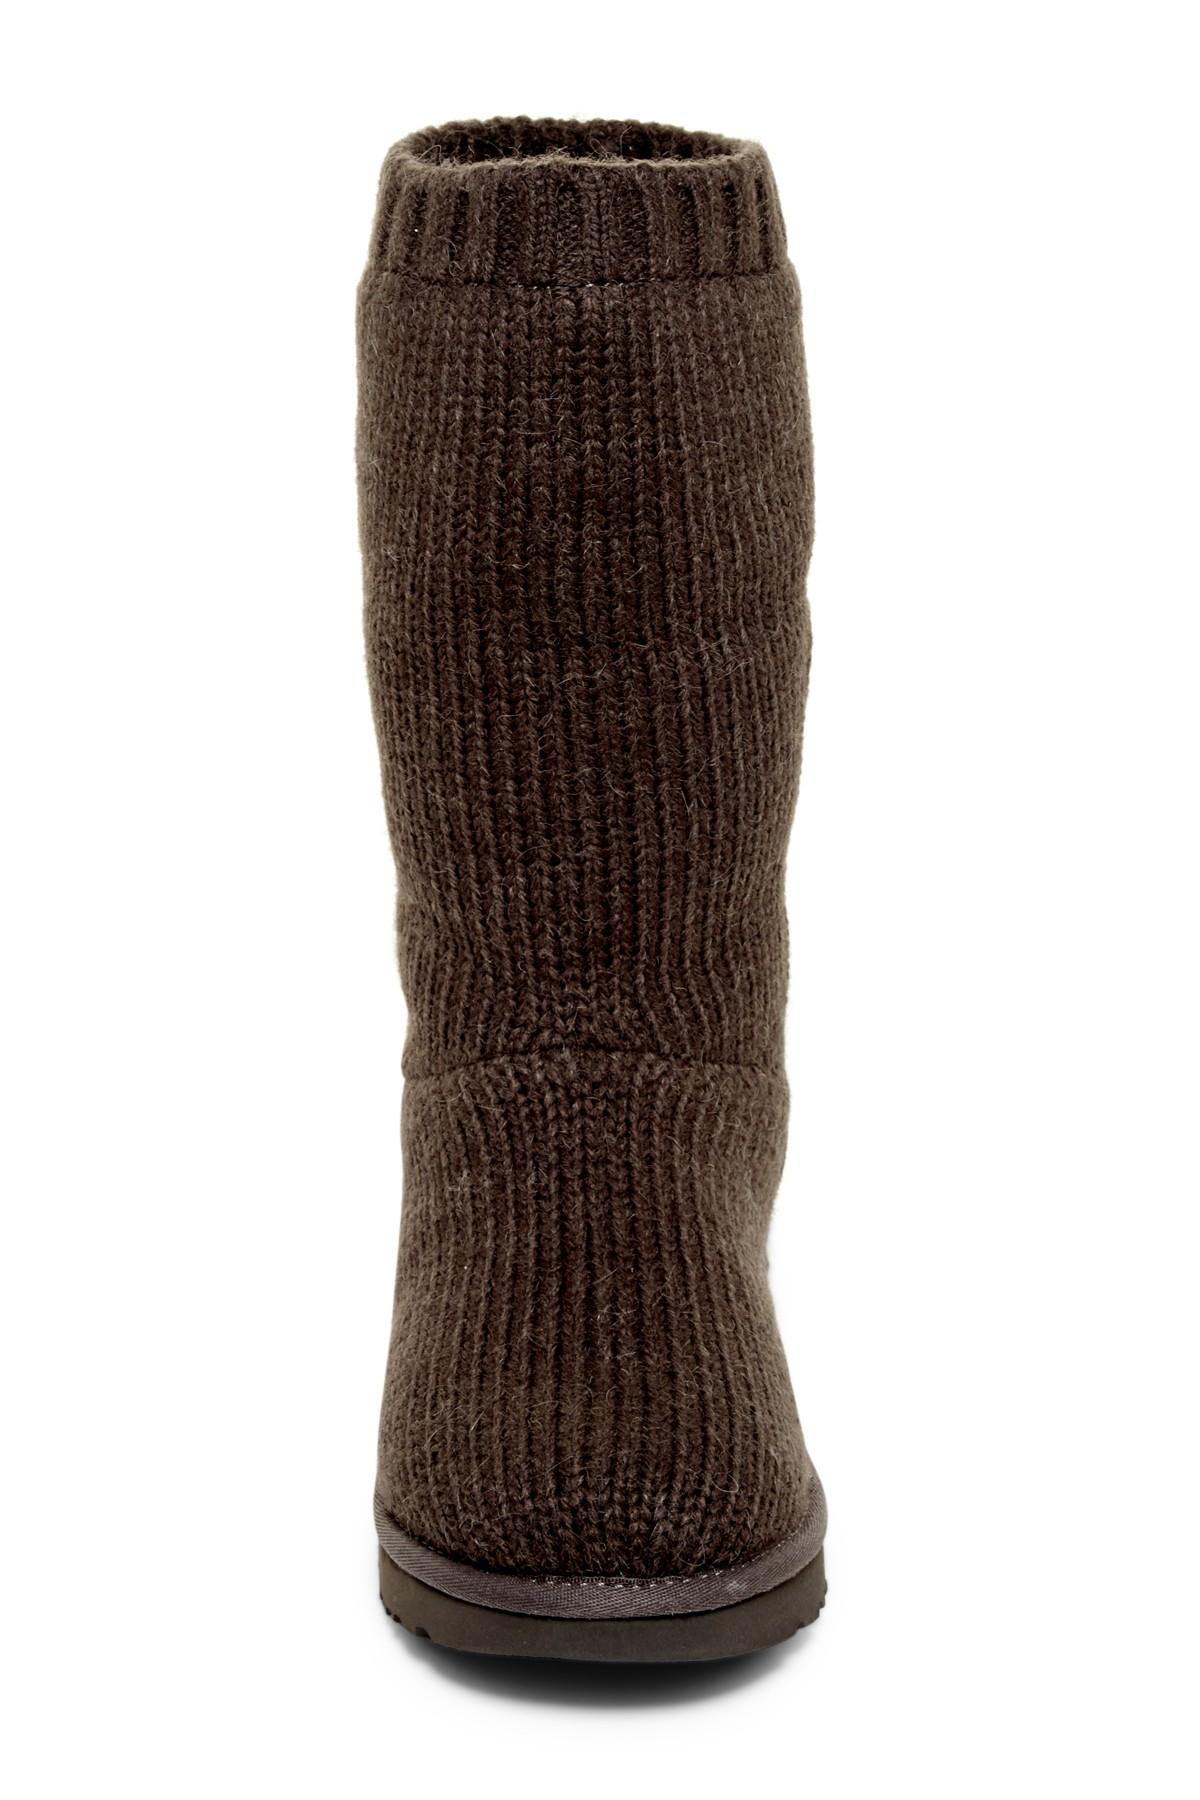 Ugg Capra Ribbed Knit Genuine Shearling Lined Boot in Gray Lyst